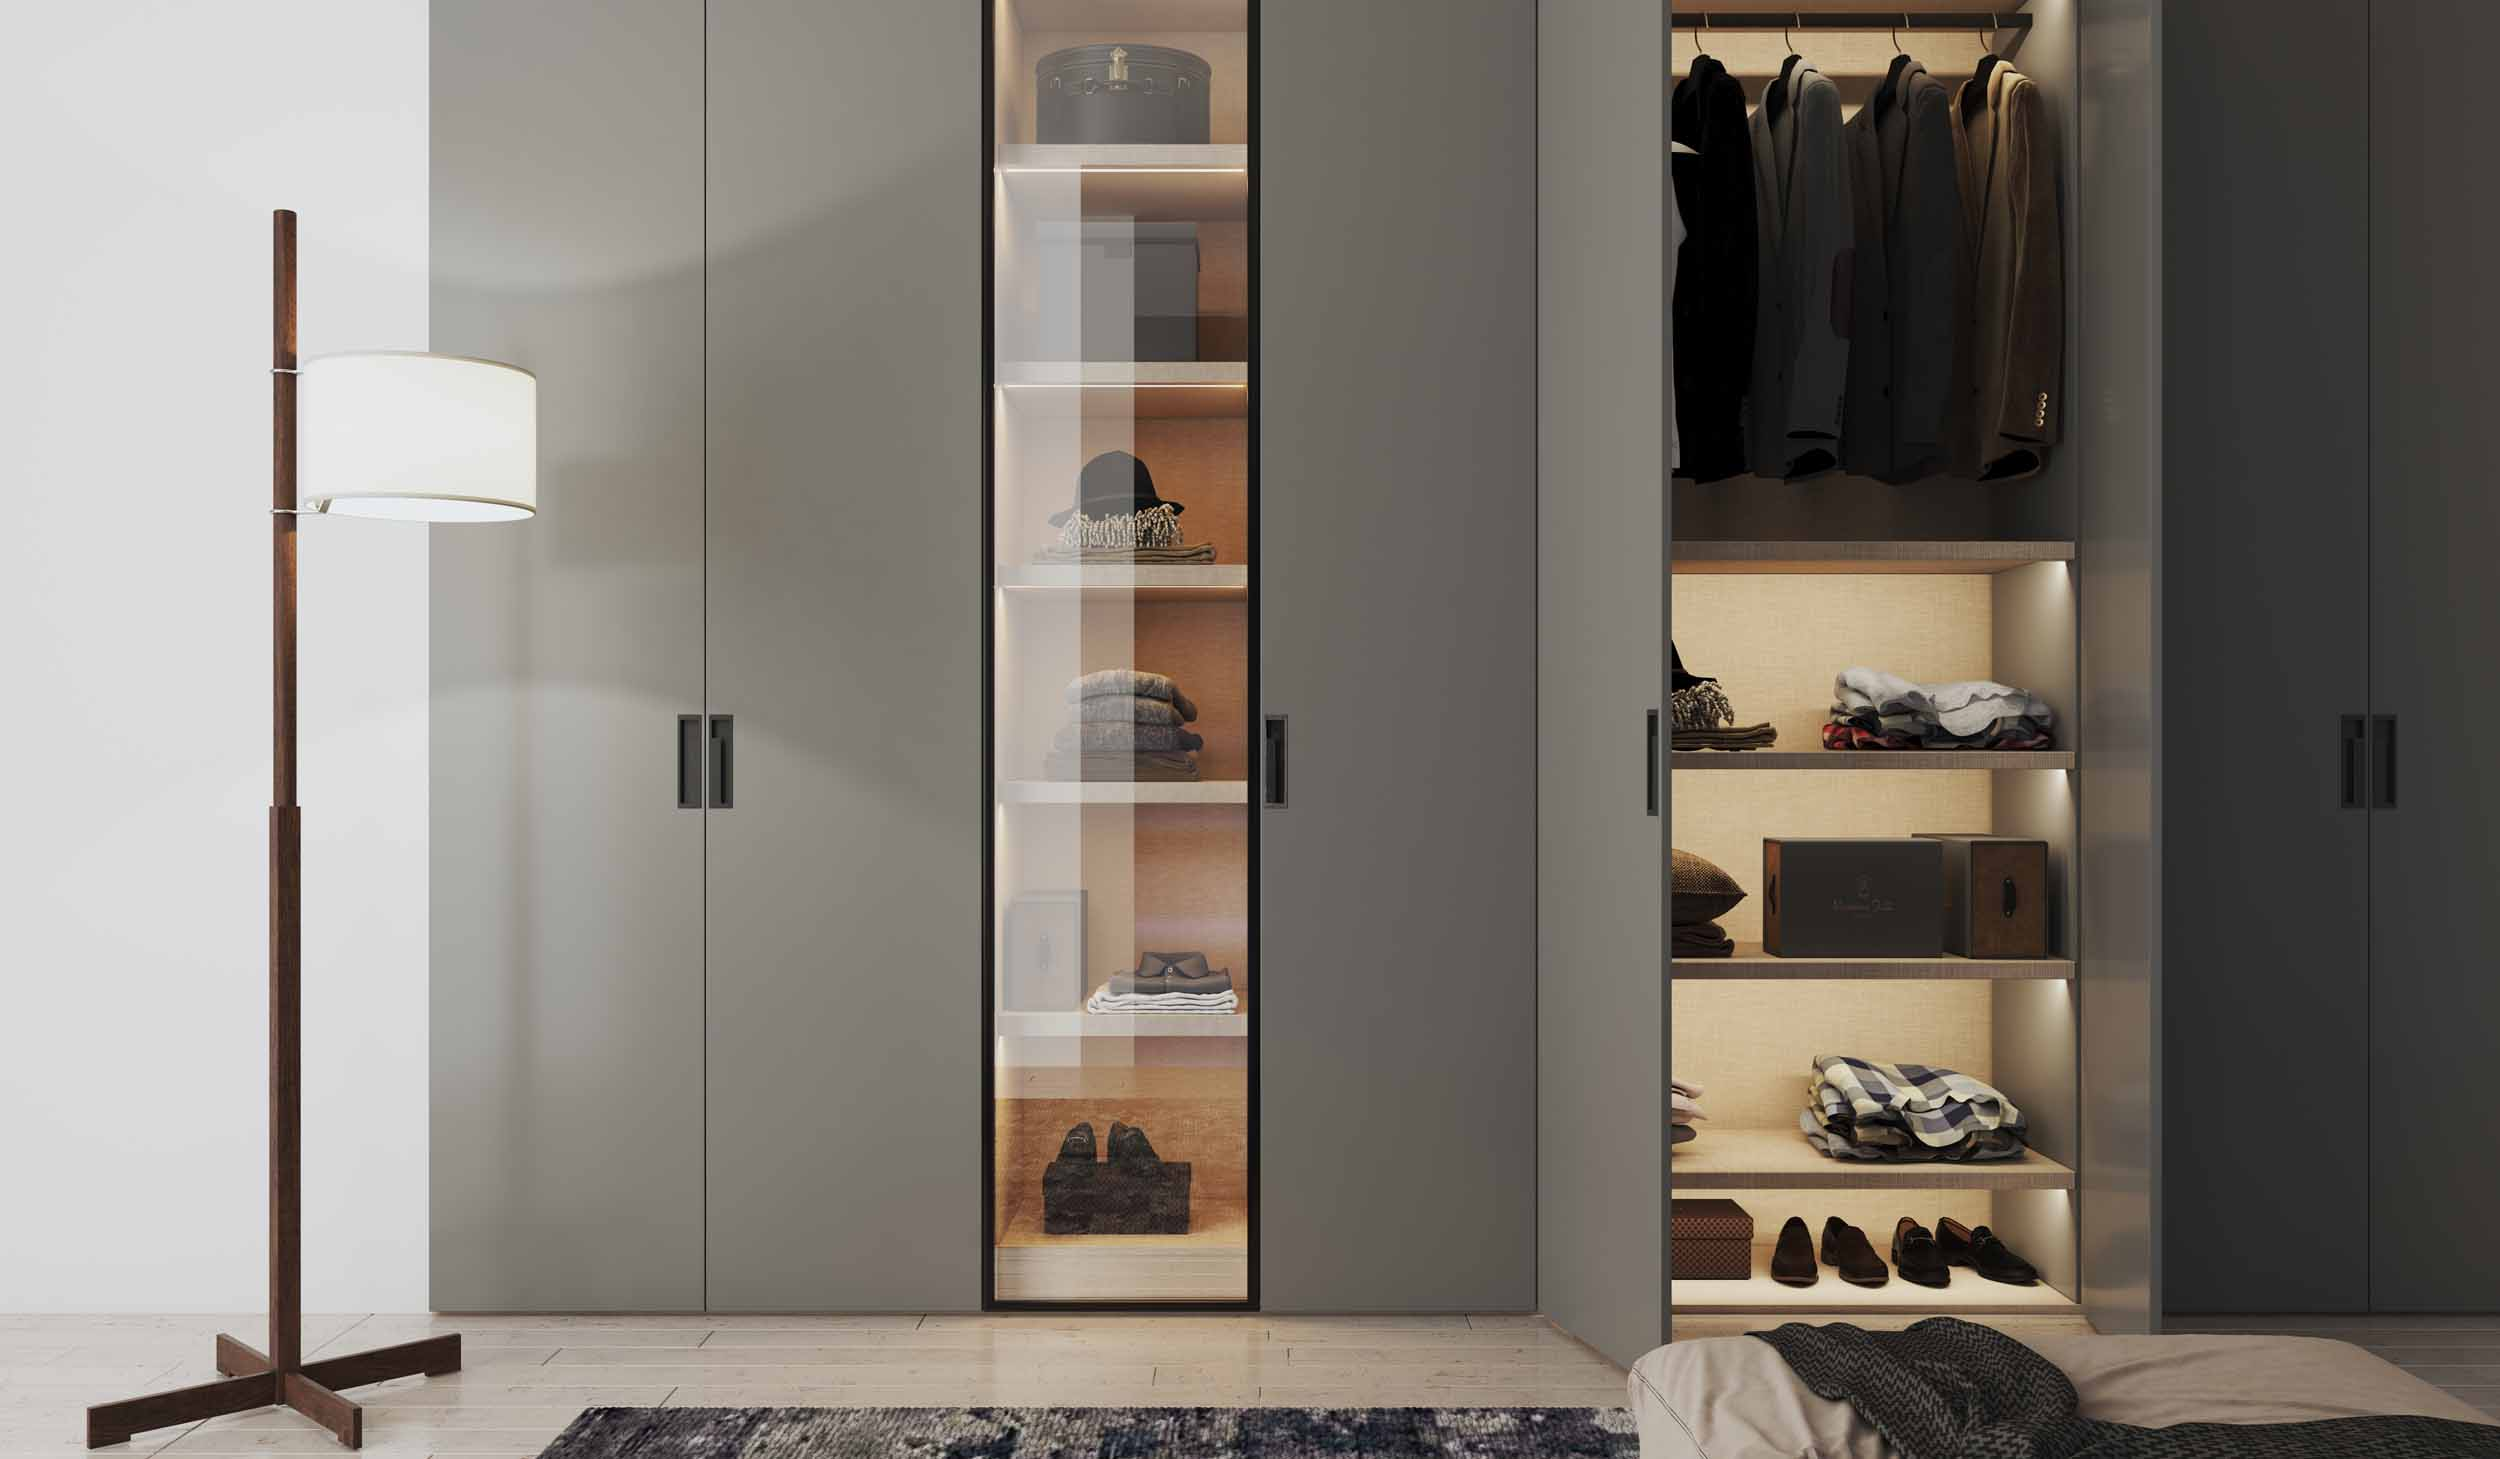 Hinged fitted wardrobe with Linear glass shelf unit with Dust grey finish